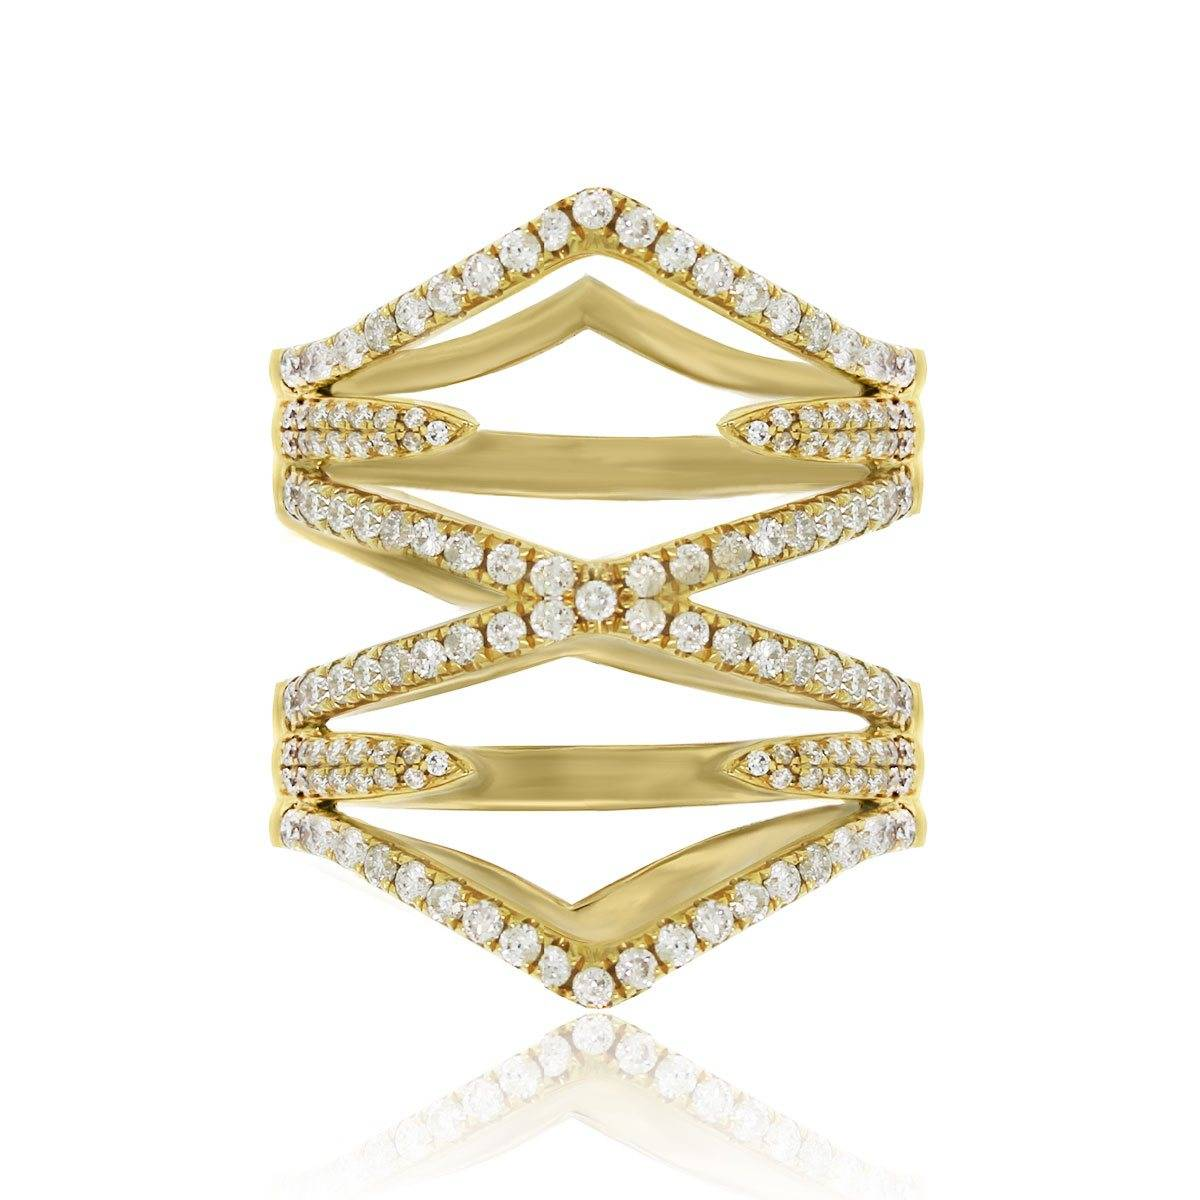 18k Yellow Gold 0.83ctw Diamond Cocktail Ring